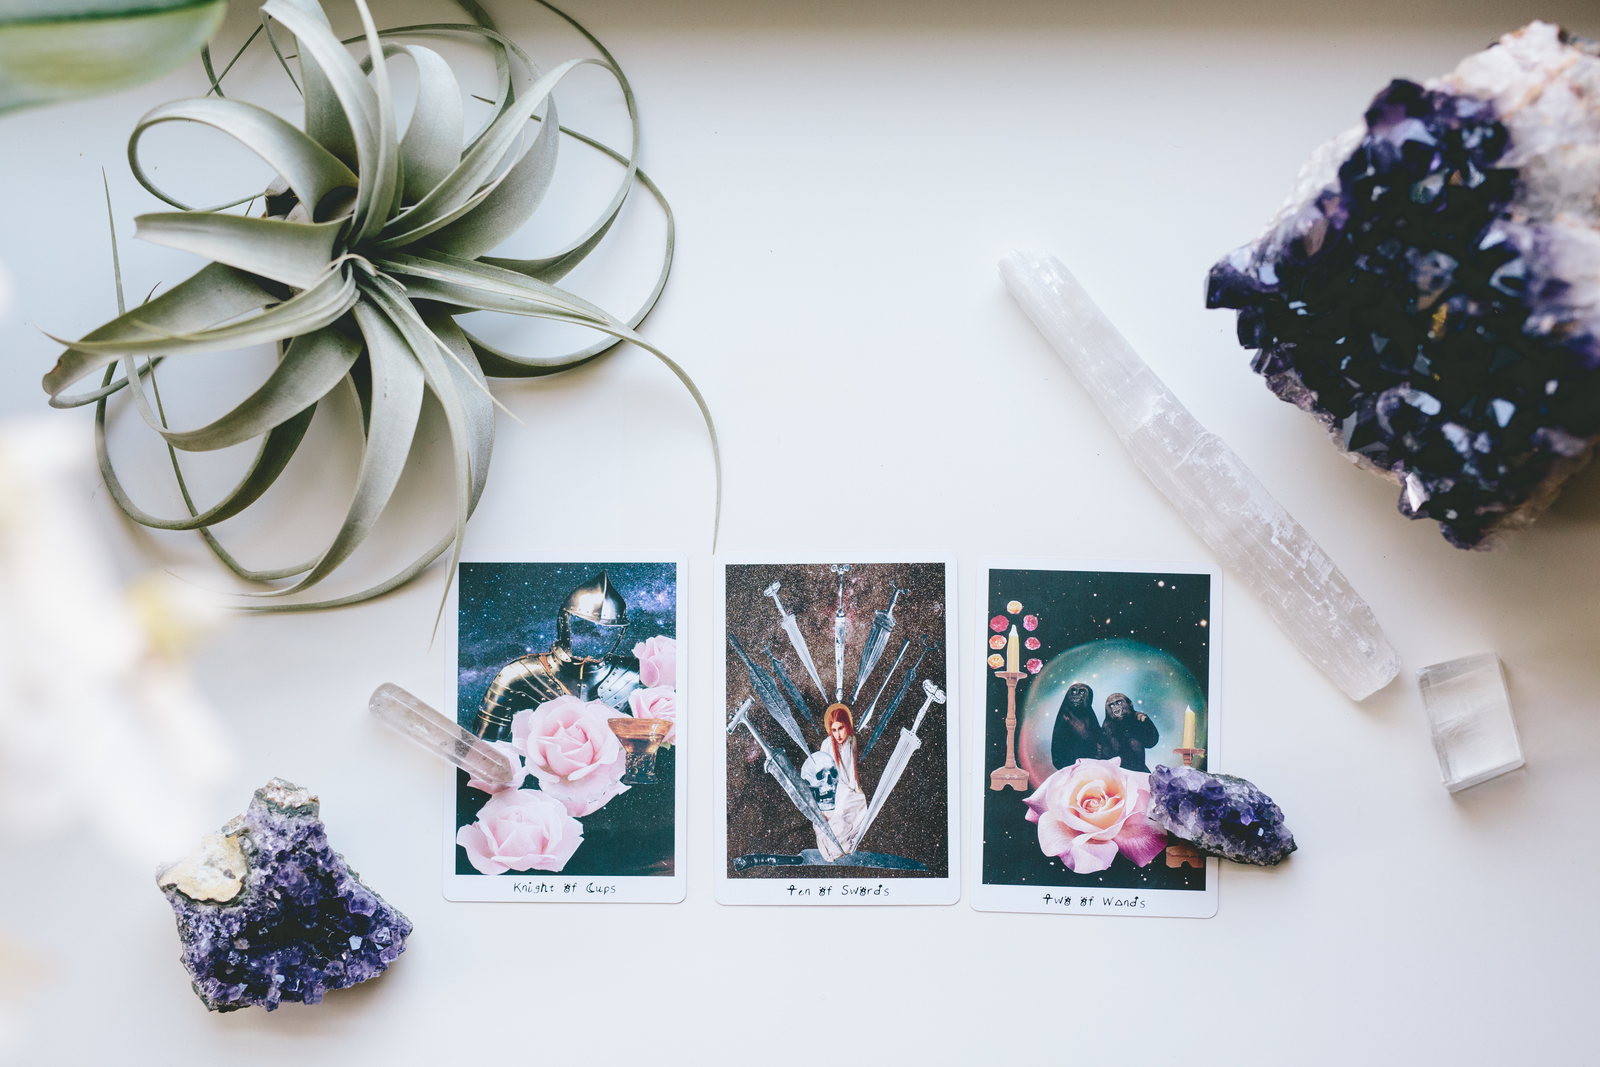 Tarot-amethyst-selenite-airplant